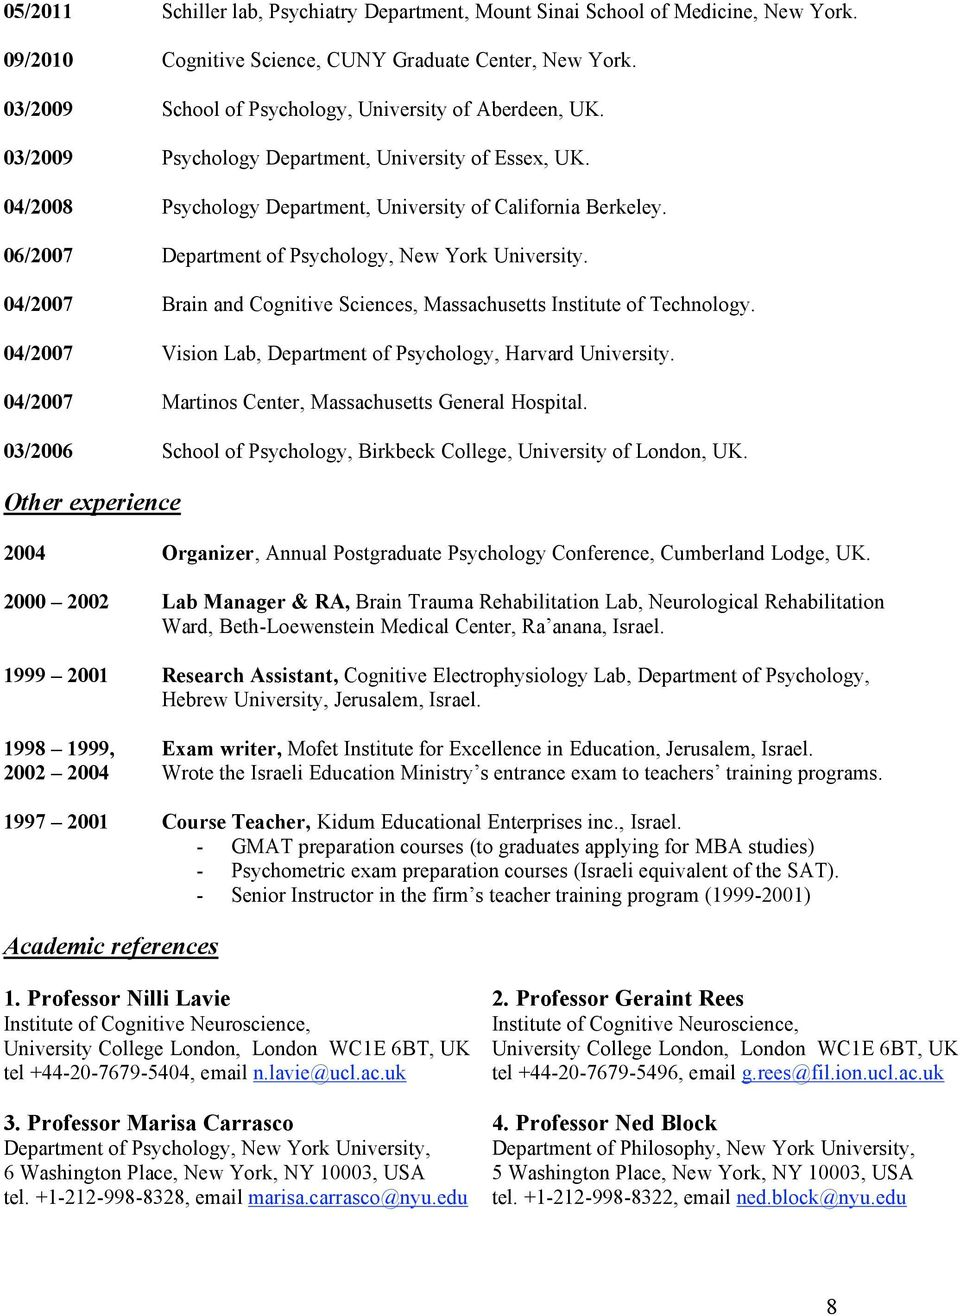 06/2007 Department of Psychology, New York University. 04/2007 Brain and Cognitive Sciences, Massachusetts Institute of Technology. 04/2007 Vision Lab, Department of Psychology, Harvard University.